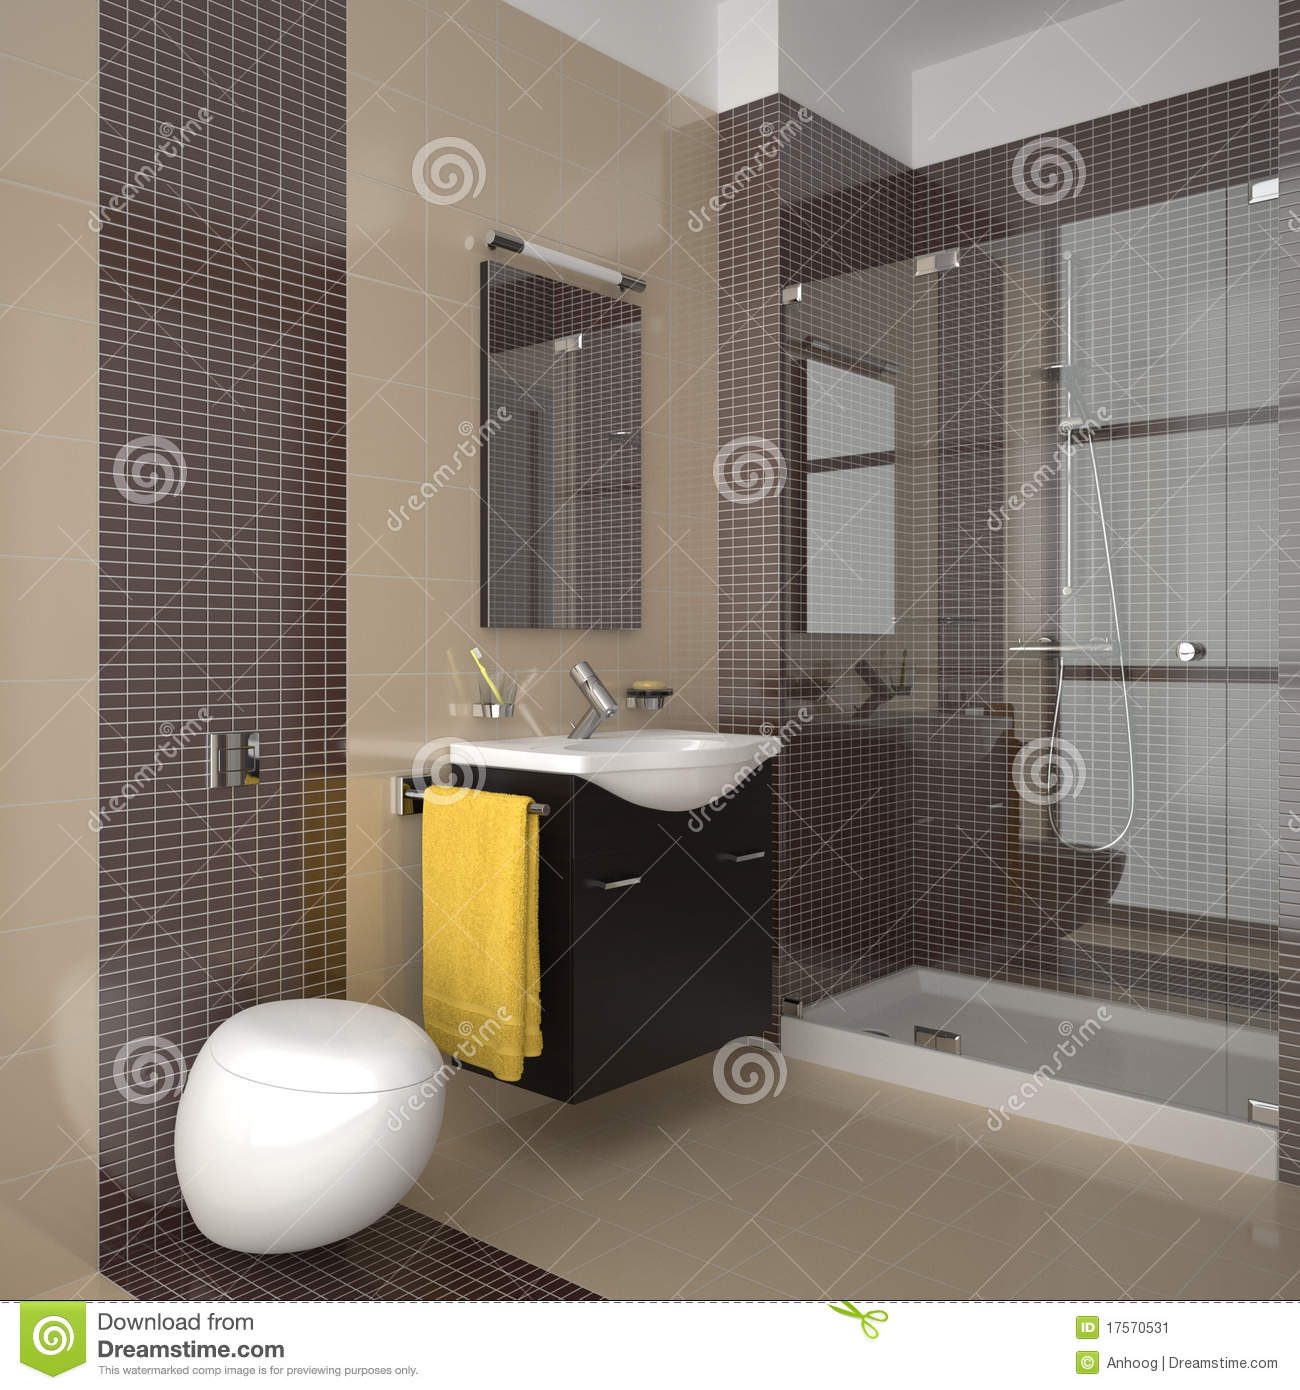 Modern Bathroom With Beige And Brown Tiles Stock Image - Image ...